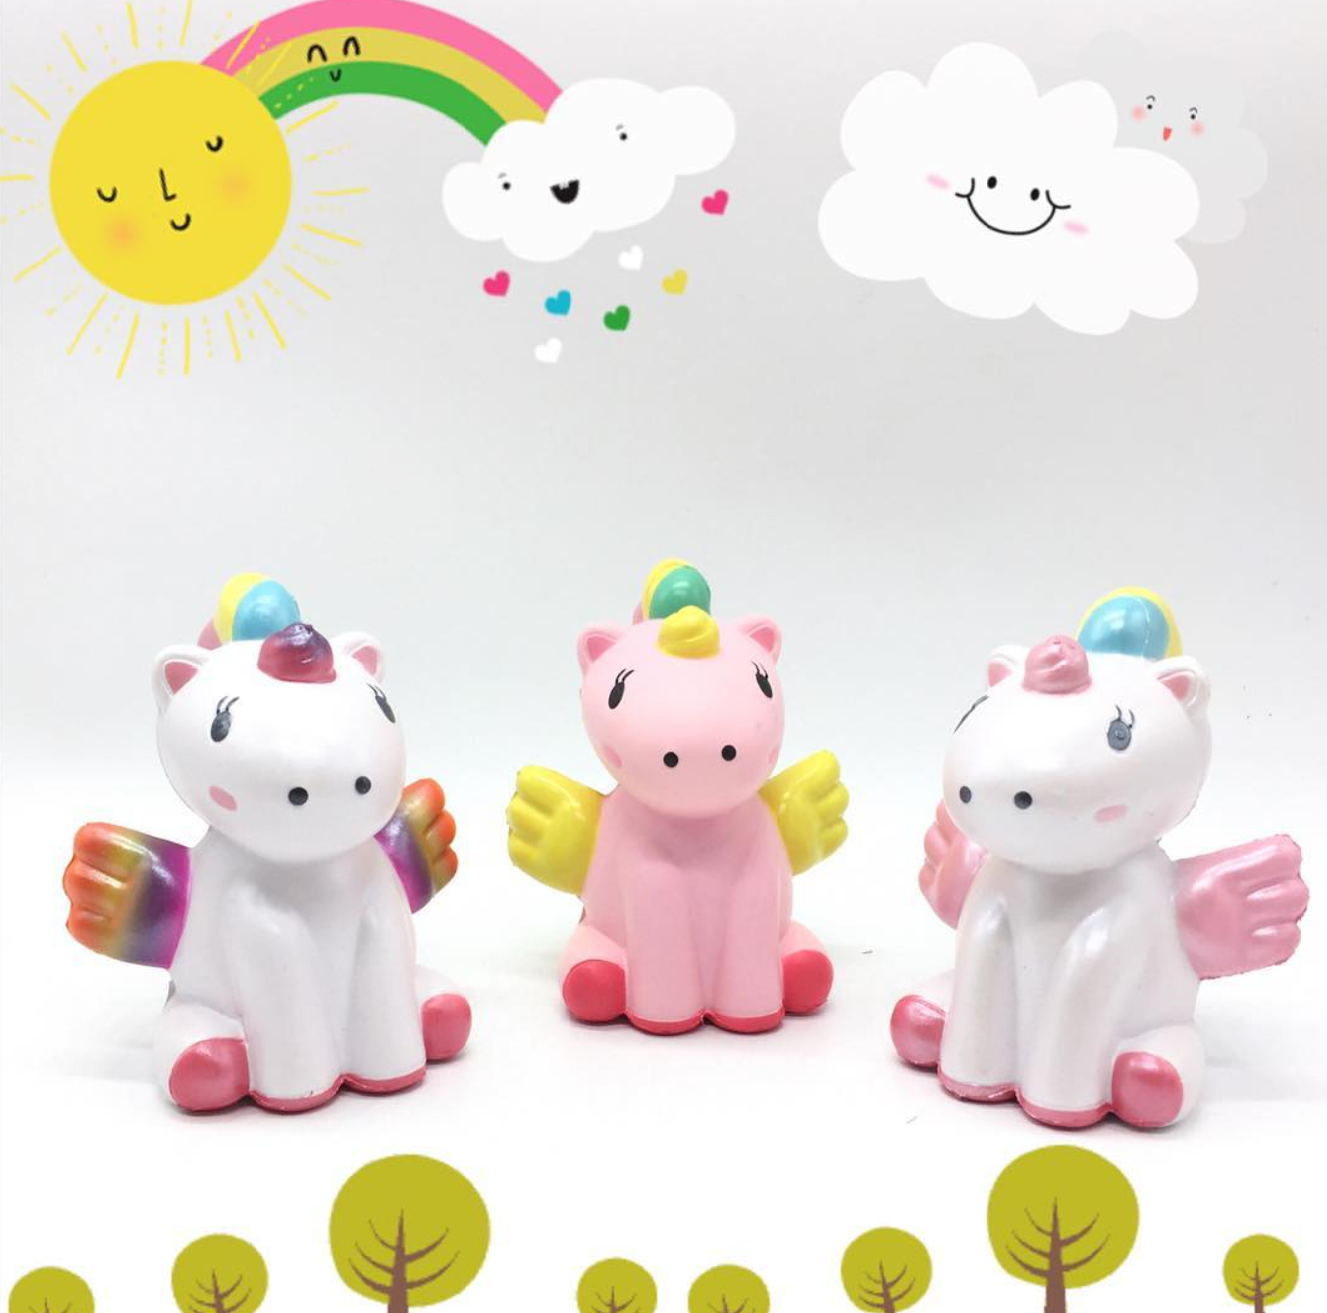 Squishy Toys With Slime In It : unicorn squishy Squishies Pinterest Unicorns, Magical unicorn and Slime